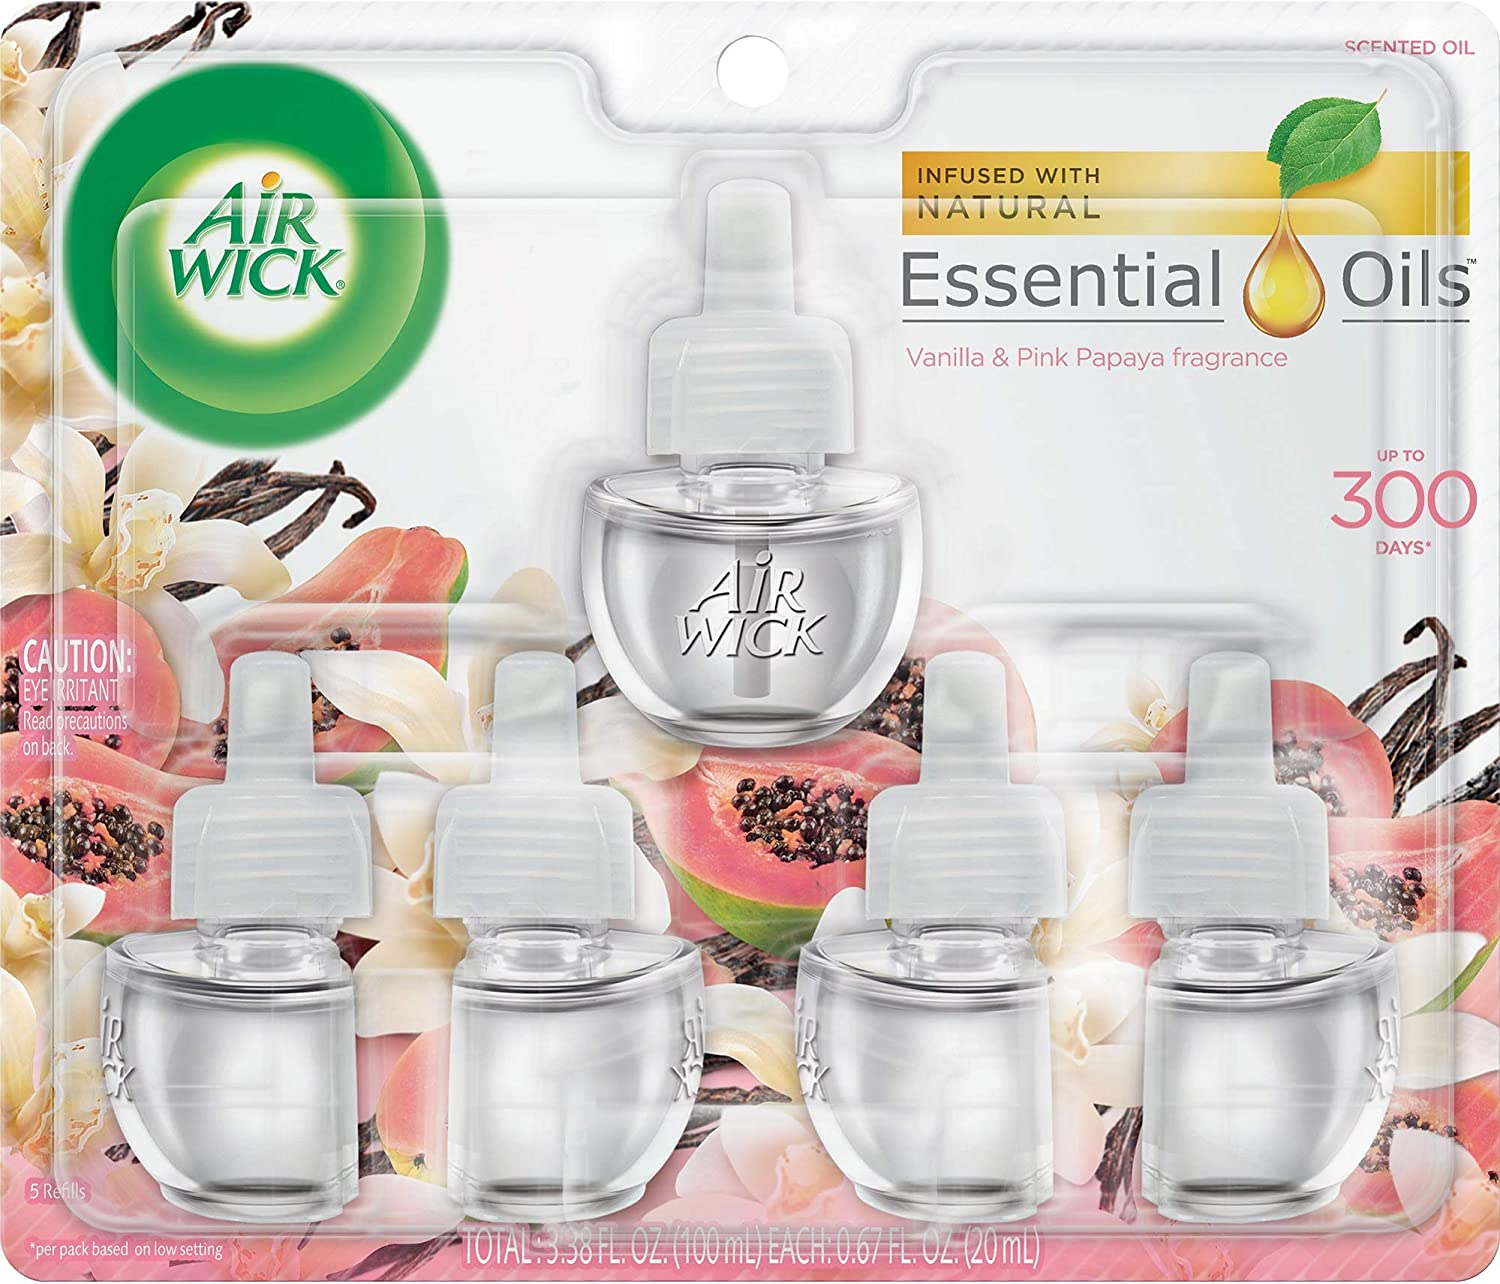 Air Wick plug in Scented Oil 5 Refills, Vanilla & Pink Papaya, (5x0.67oz), Essential Oils, Air Freshener